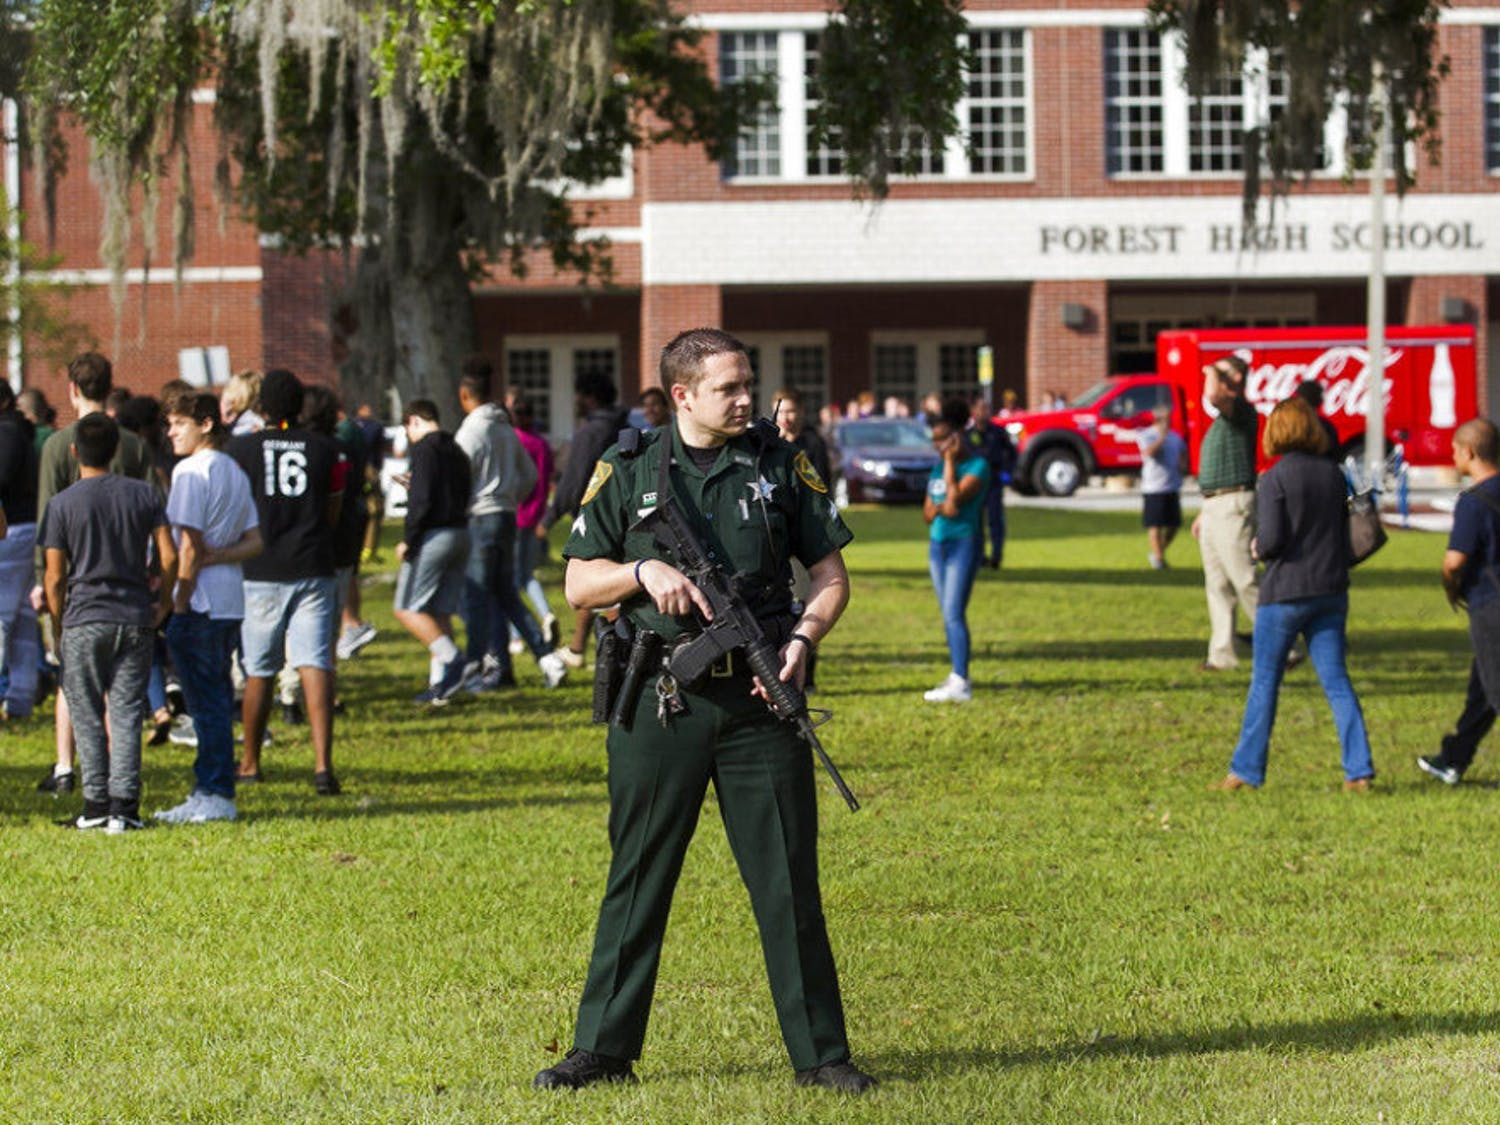 A Marion County Sheriff's Deputy stands outside Forest High School as students exit the school after a school shooting occurred, Friday, April 20, 2018 in Ocala, Fla. One student shot another in the ankle at the high school and a suspect is in custody, authorities said Friday. The injured student was taken to a local hospital for treatment. (